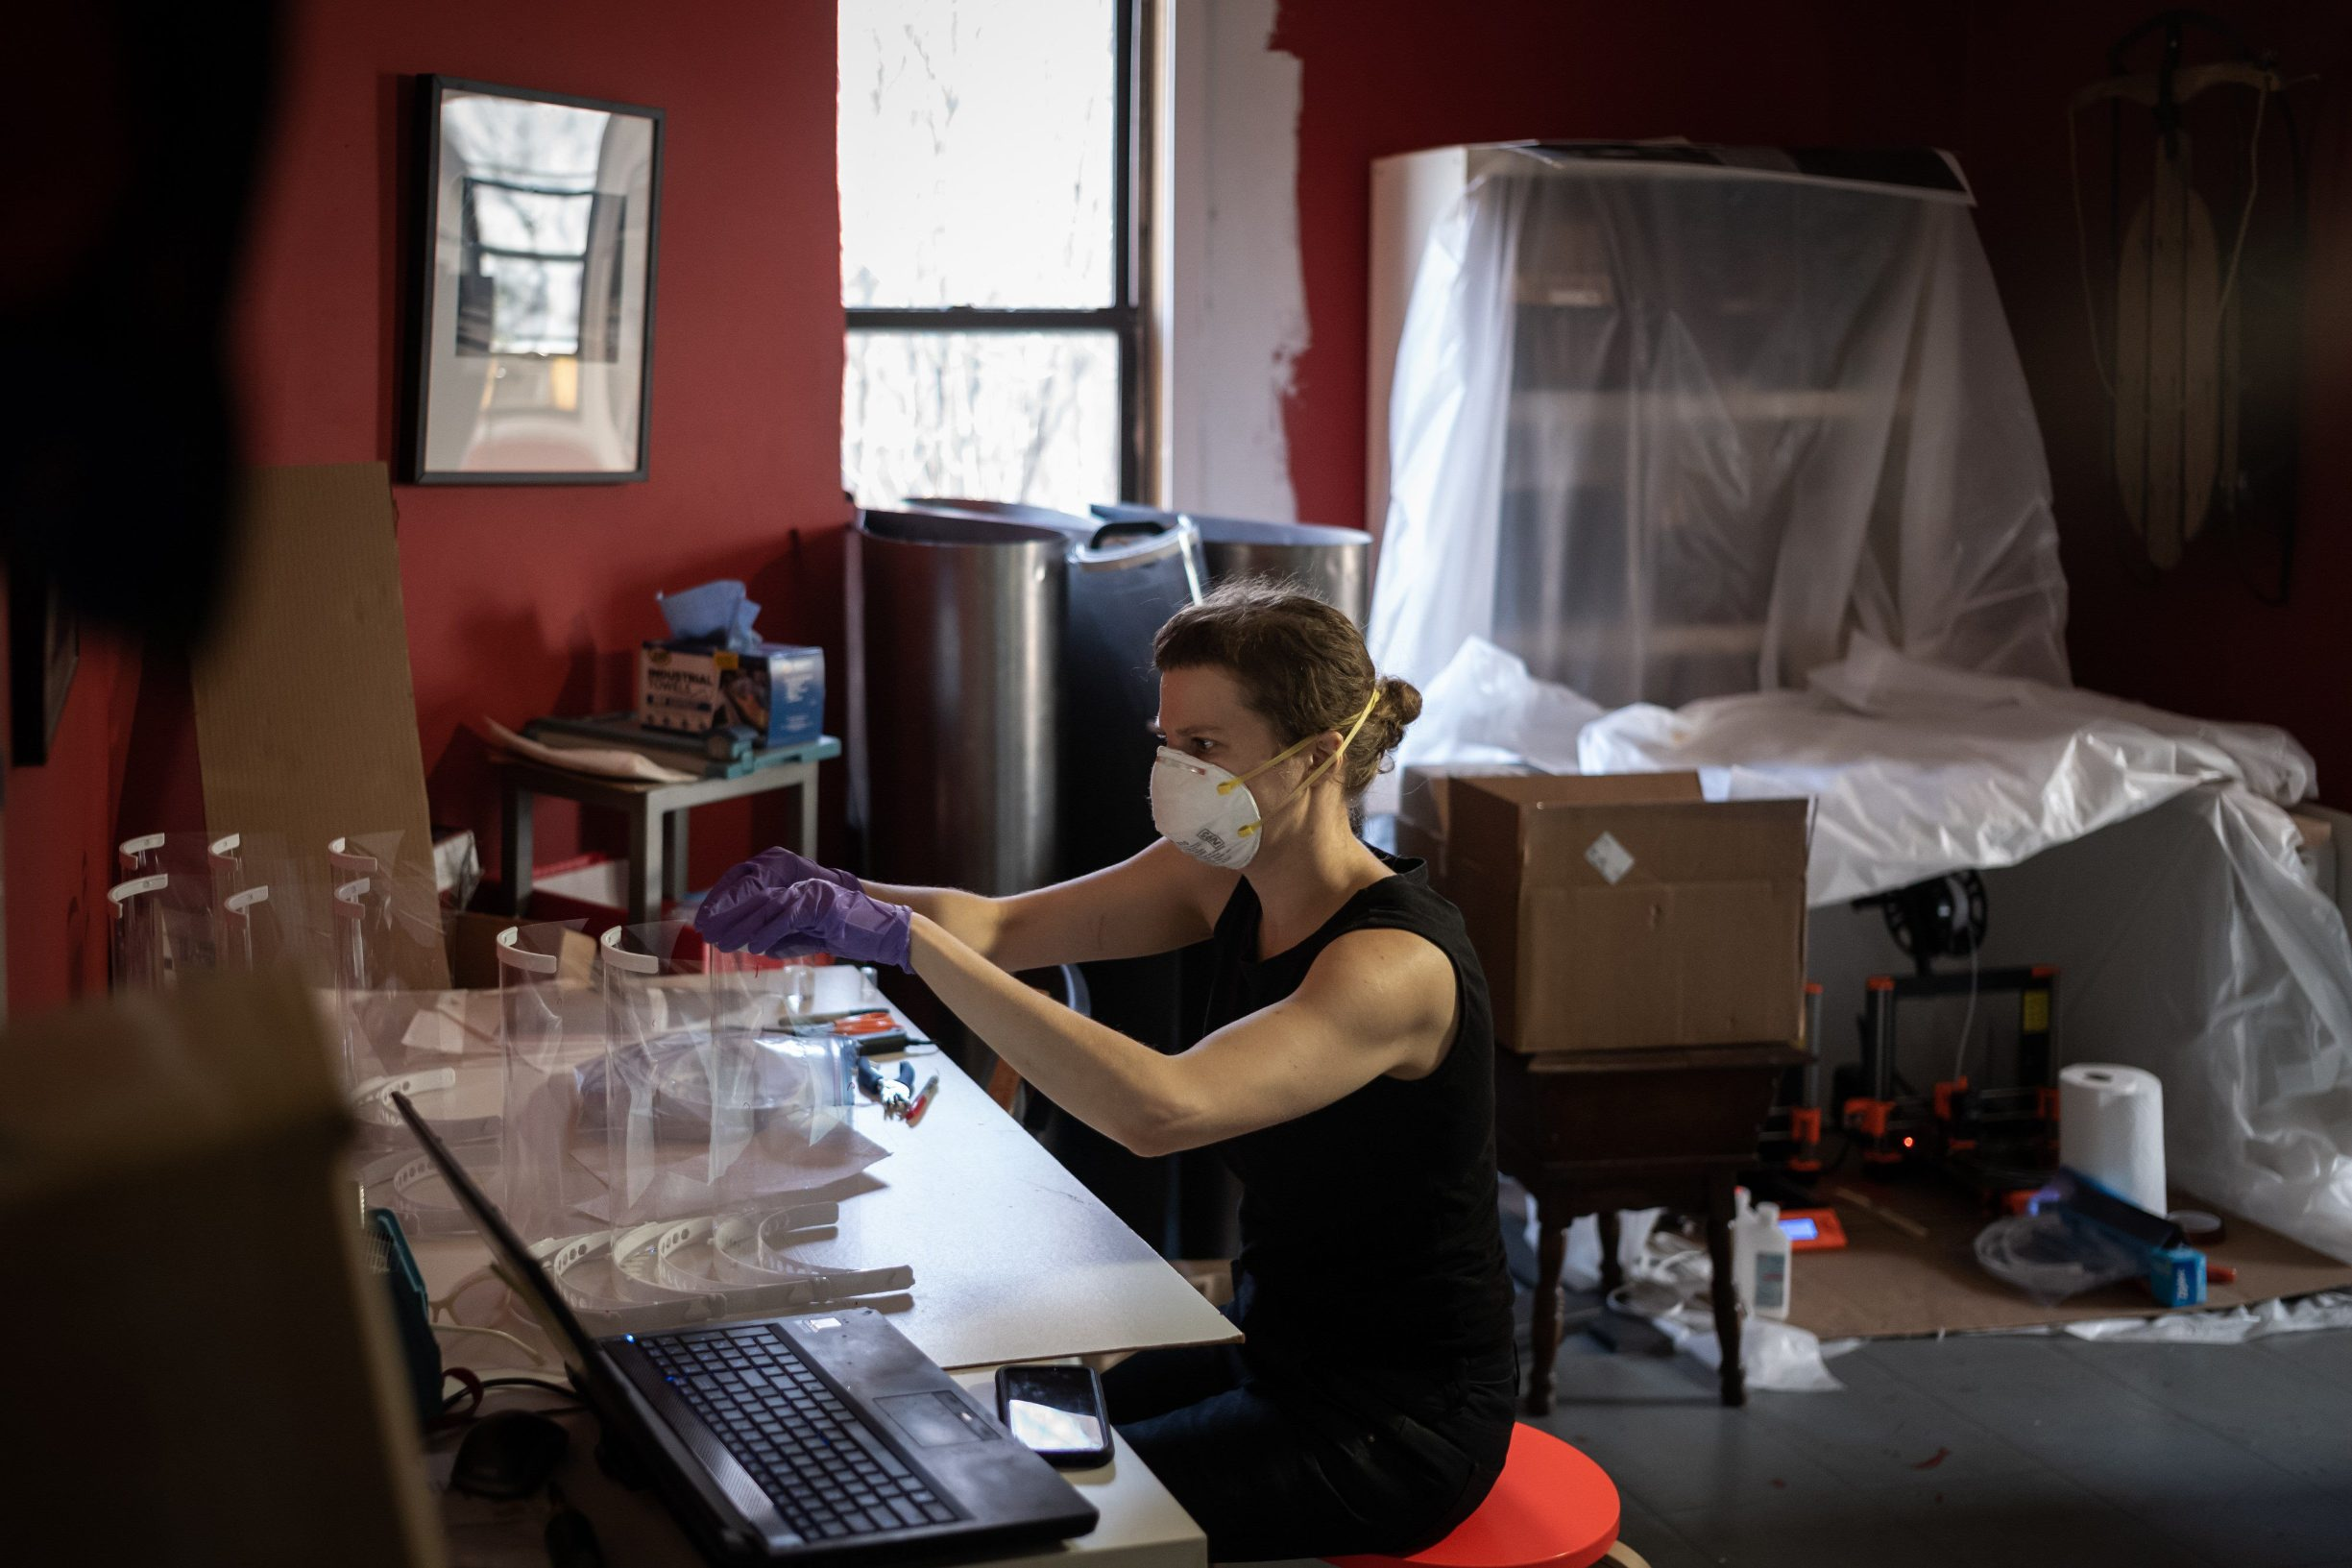 NEW YORK, NY - MARCH 27: Artist Luba Drozd makes protective shields for health workers in her apartment on her 3D printers on March 27, 2020 in Brooklyn, New York. Together with friends, she started a GoFundMe campaign to raise money to buy more supplies and printers. Since launching her campaign on March 24, she is overwhelmed with requests for PPEs from frontline healthcare workers. The World Health Organization declared coronavirus (COVID-19) a global pandemic on March 11.   Misha Friedman/Getty Images/AFP == FOR NEWSPAPERS, INTERNET, TELCOS & TELEVISION USE ONLY ==